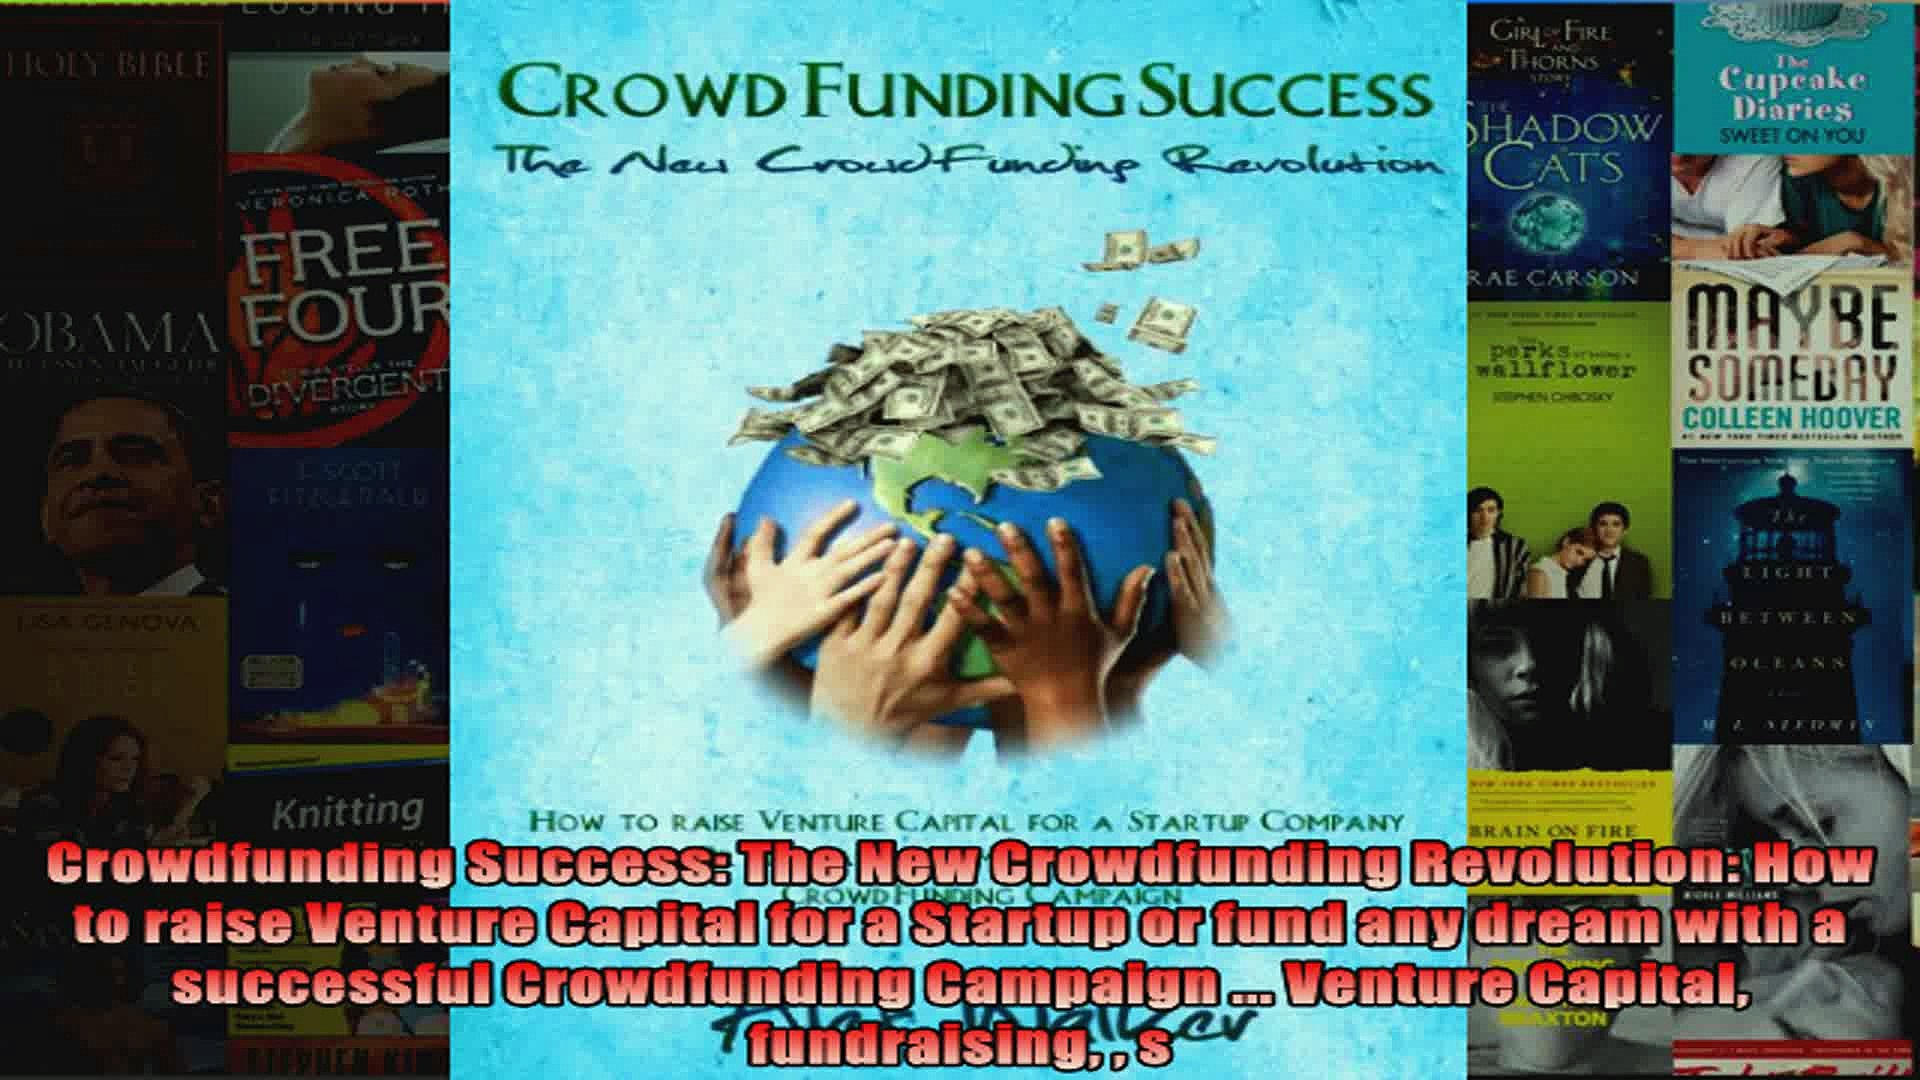 Crowdfunding Success The New Crowdfunding Revolution How to raise Venture Capital for a